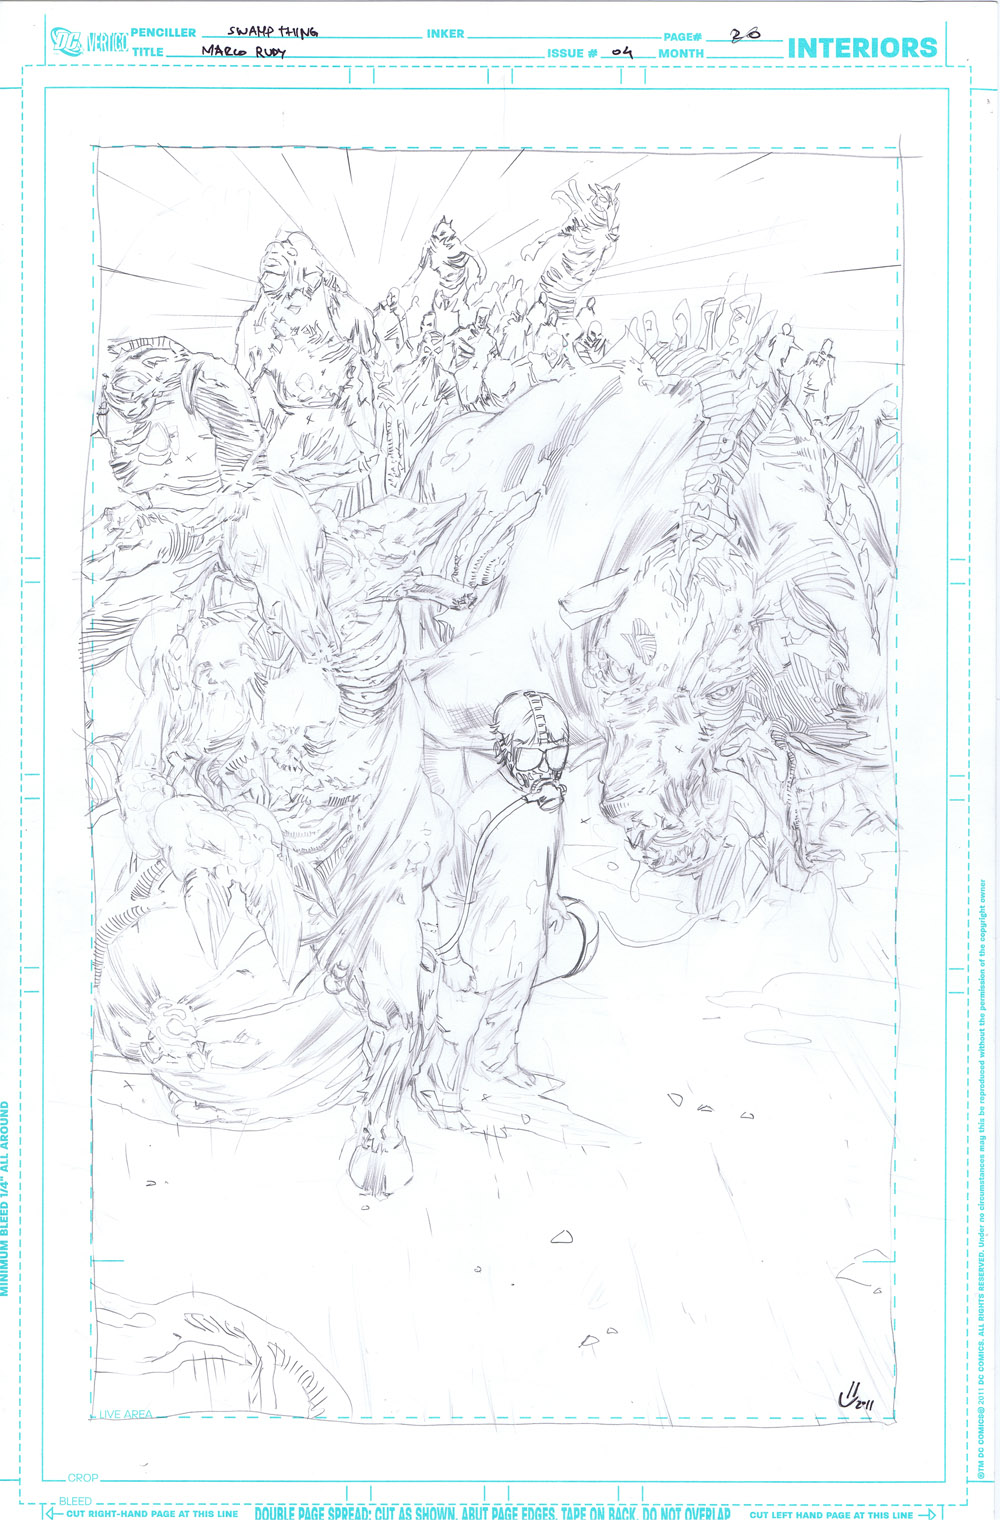 Swamp Thing #04 - page 20